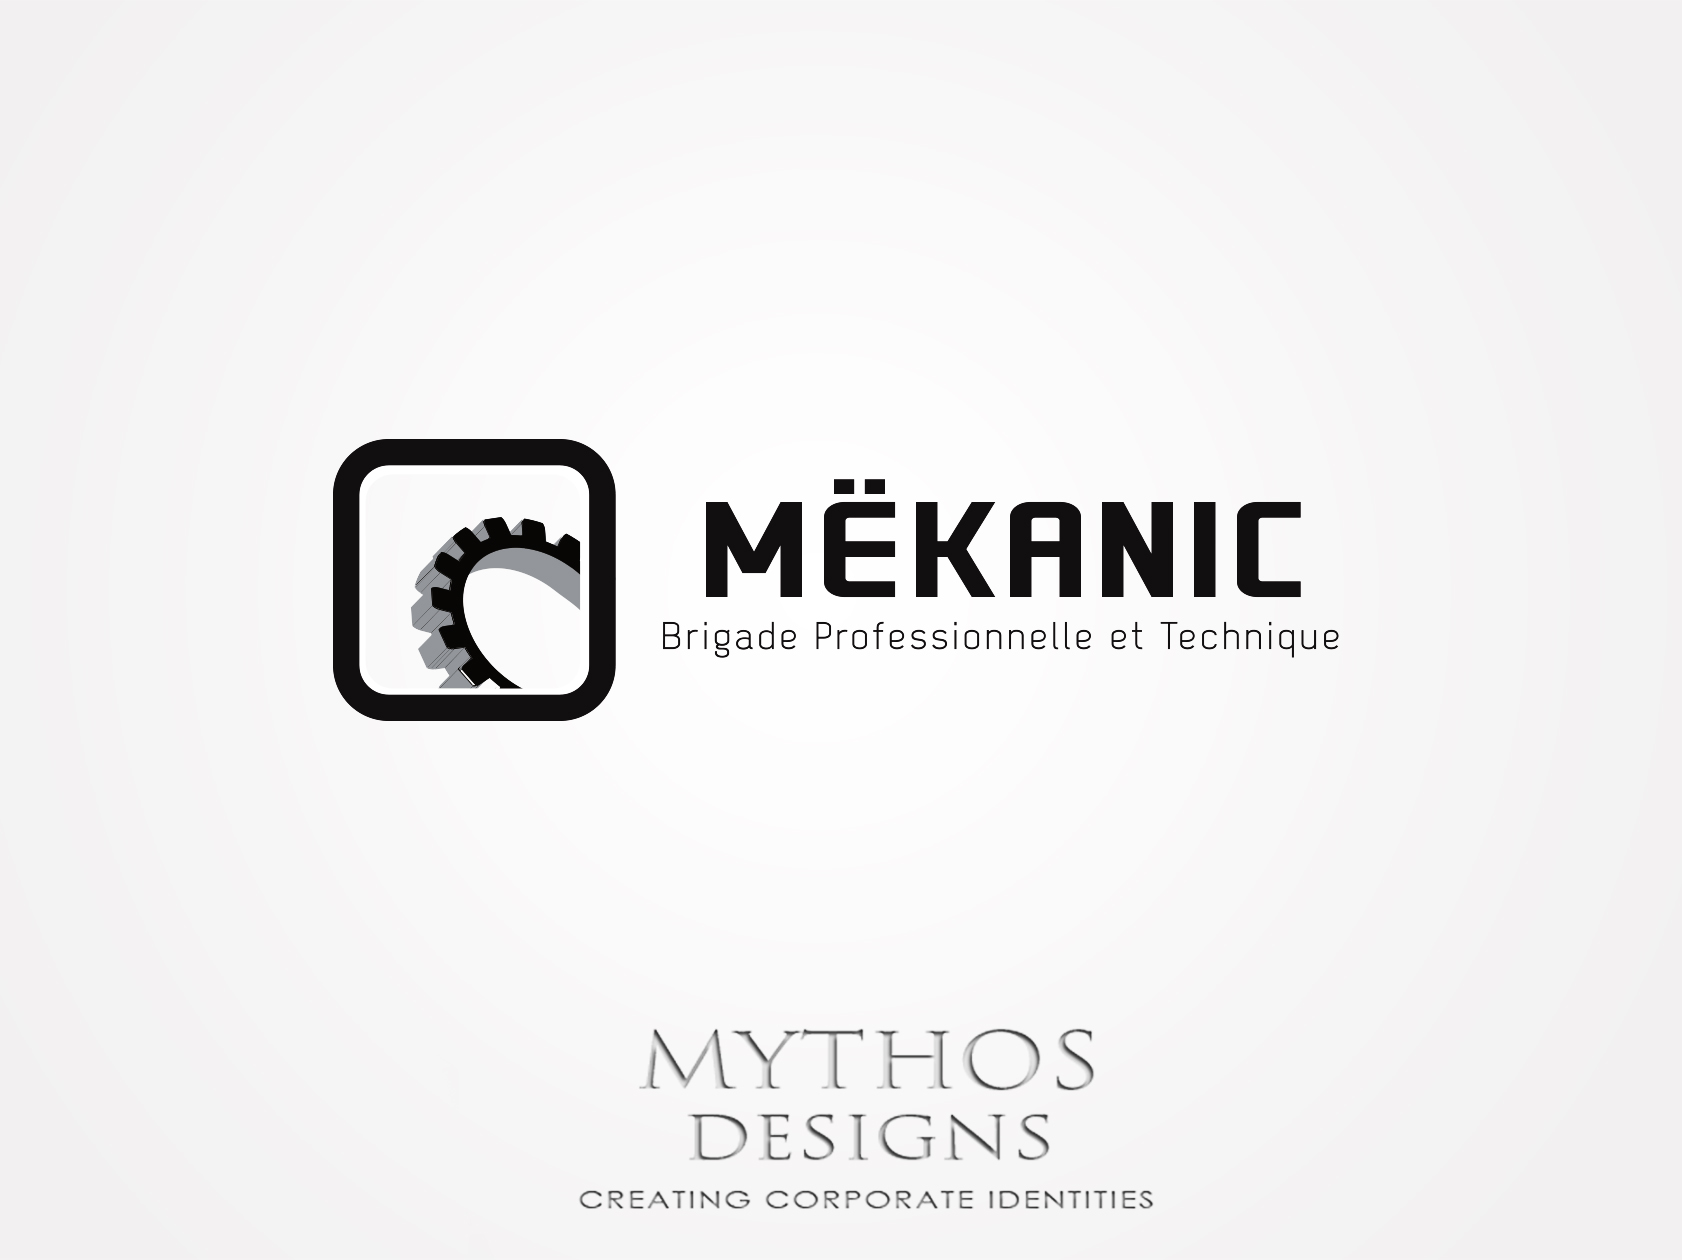 Logo Design by Mythos Designs - Entry No. 378 in the Logo Design Contest Creative Logo Design for MËKANIC - Professional and technical squad.